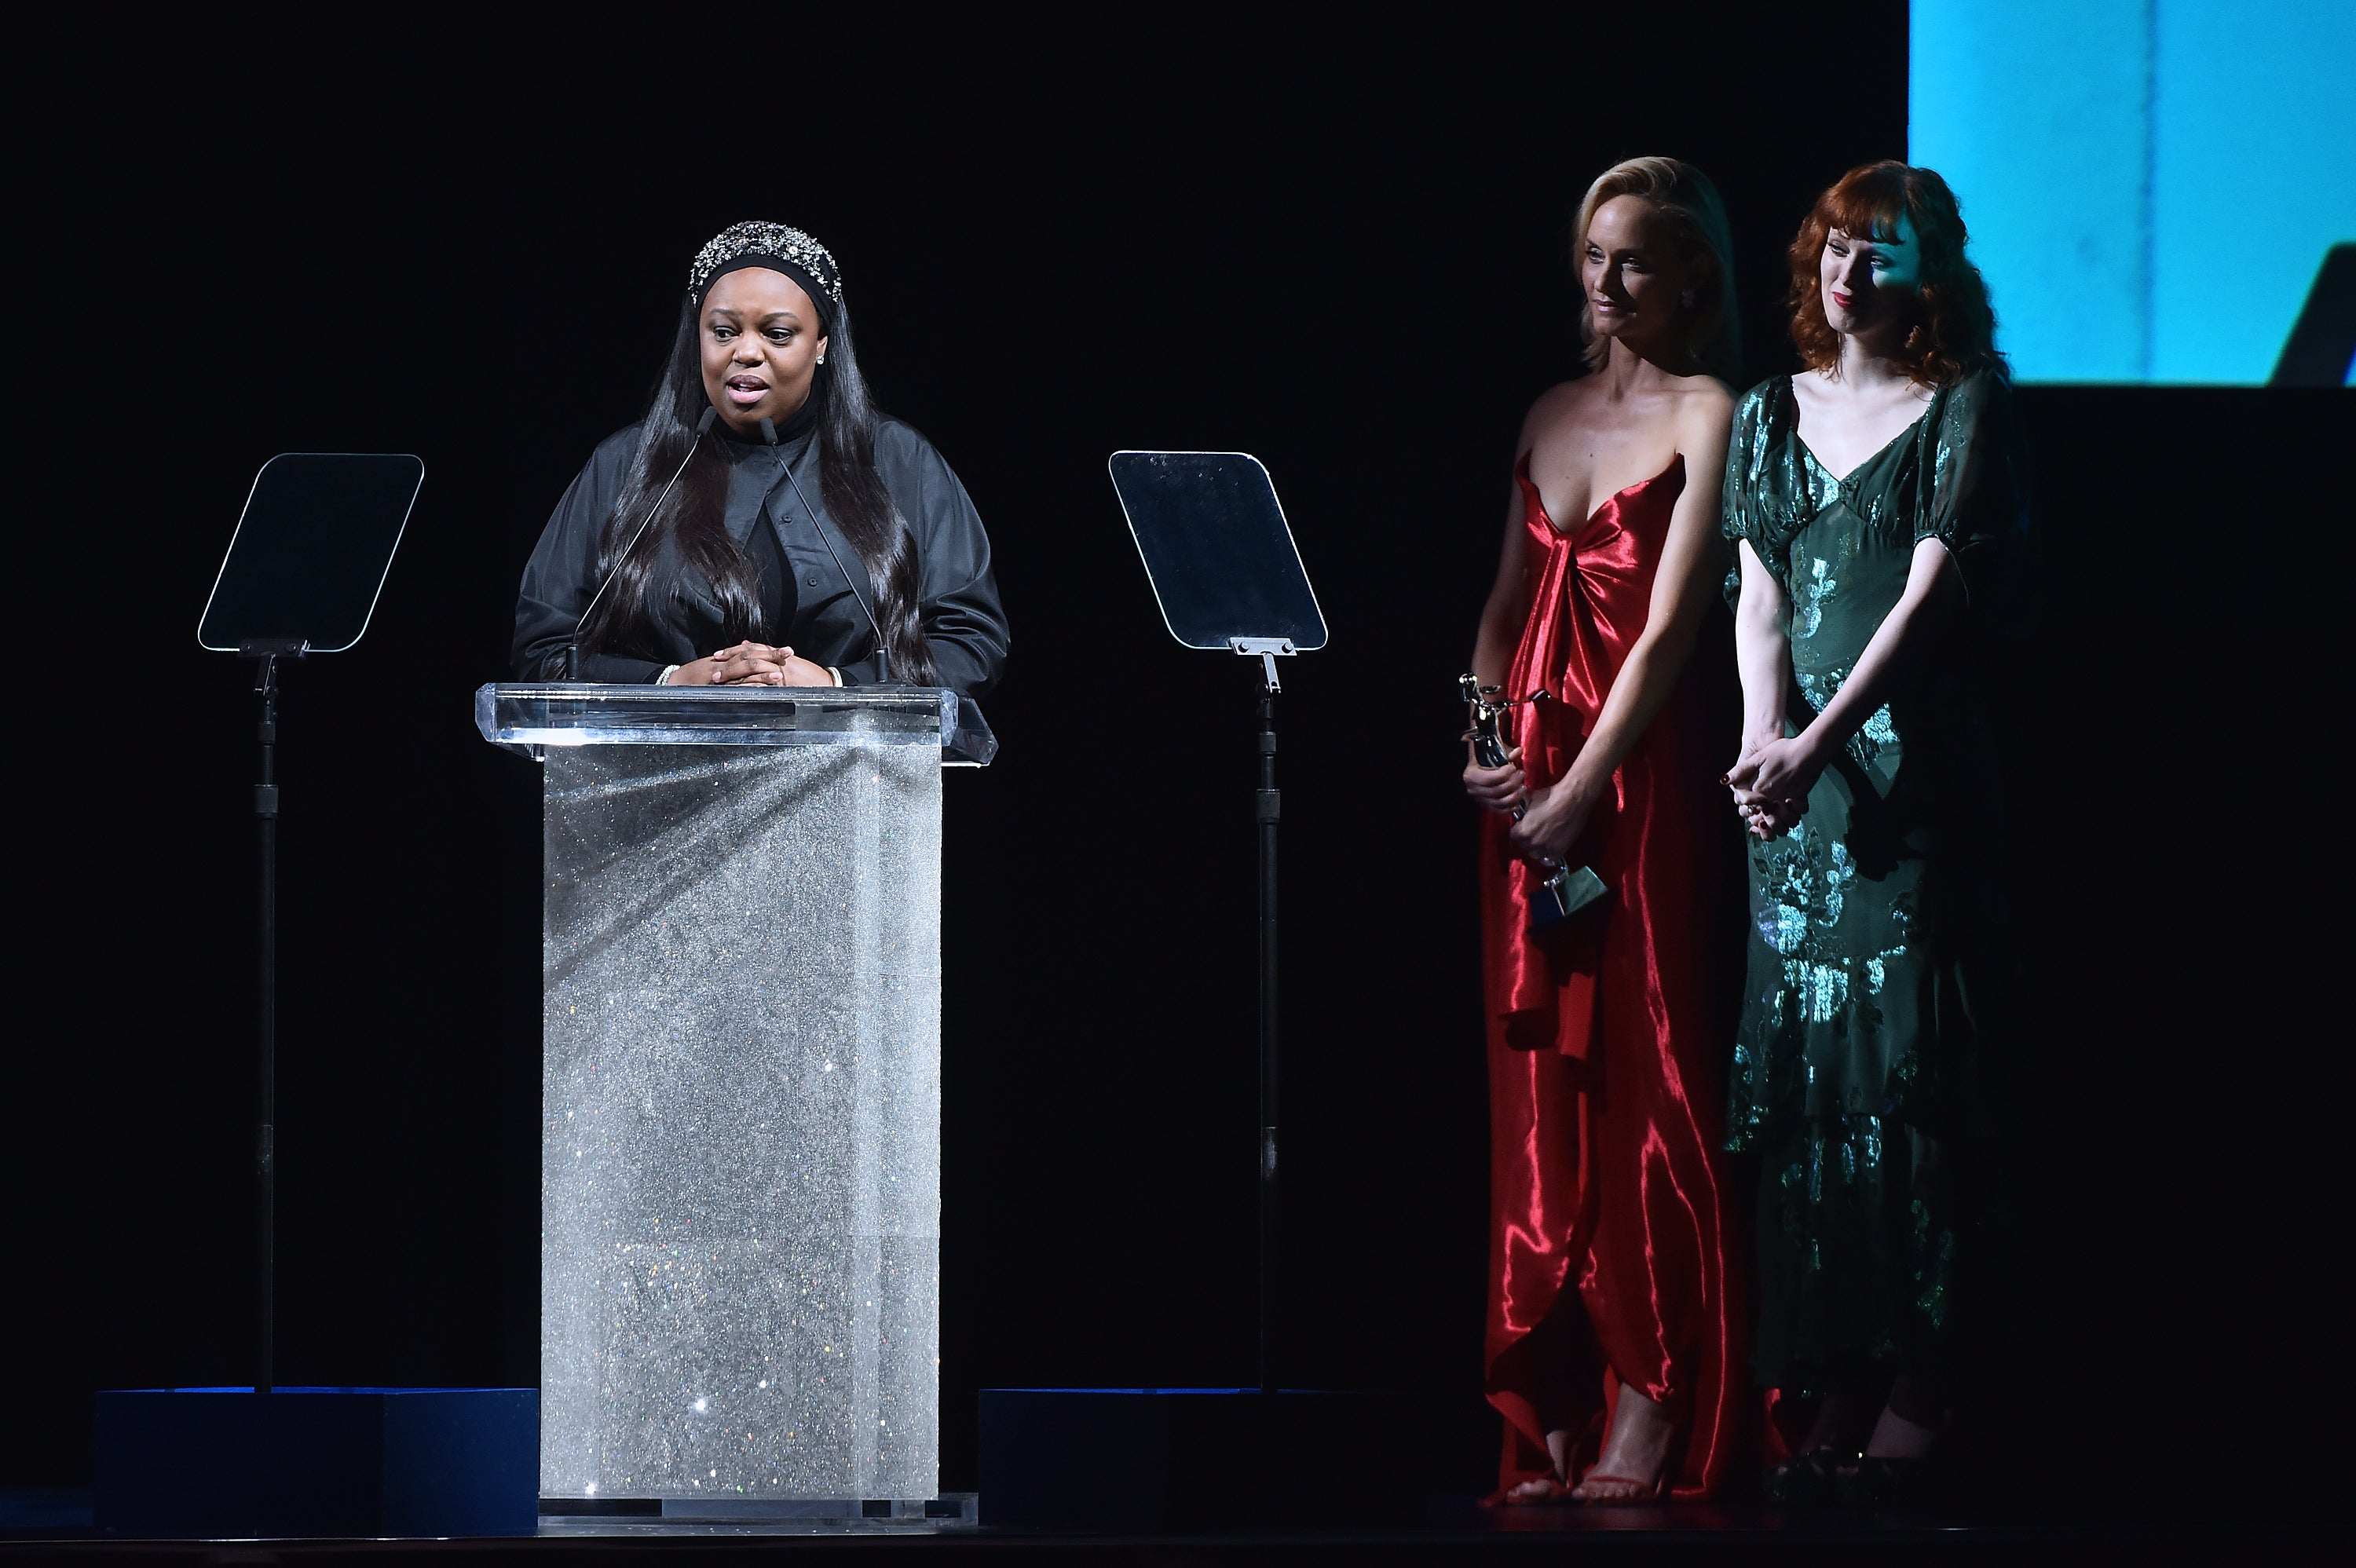 Pat McGrath Makes History As the First Makeup Artist to Receive the CFDA Founder's Award